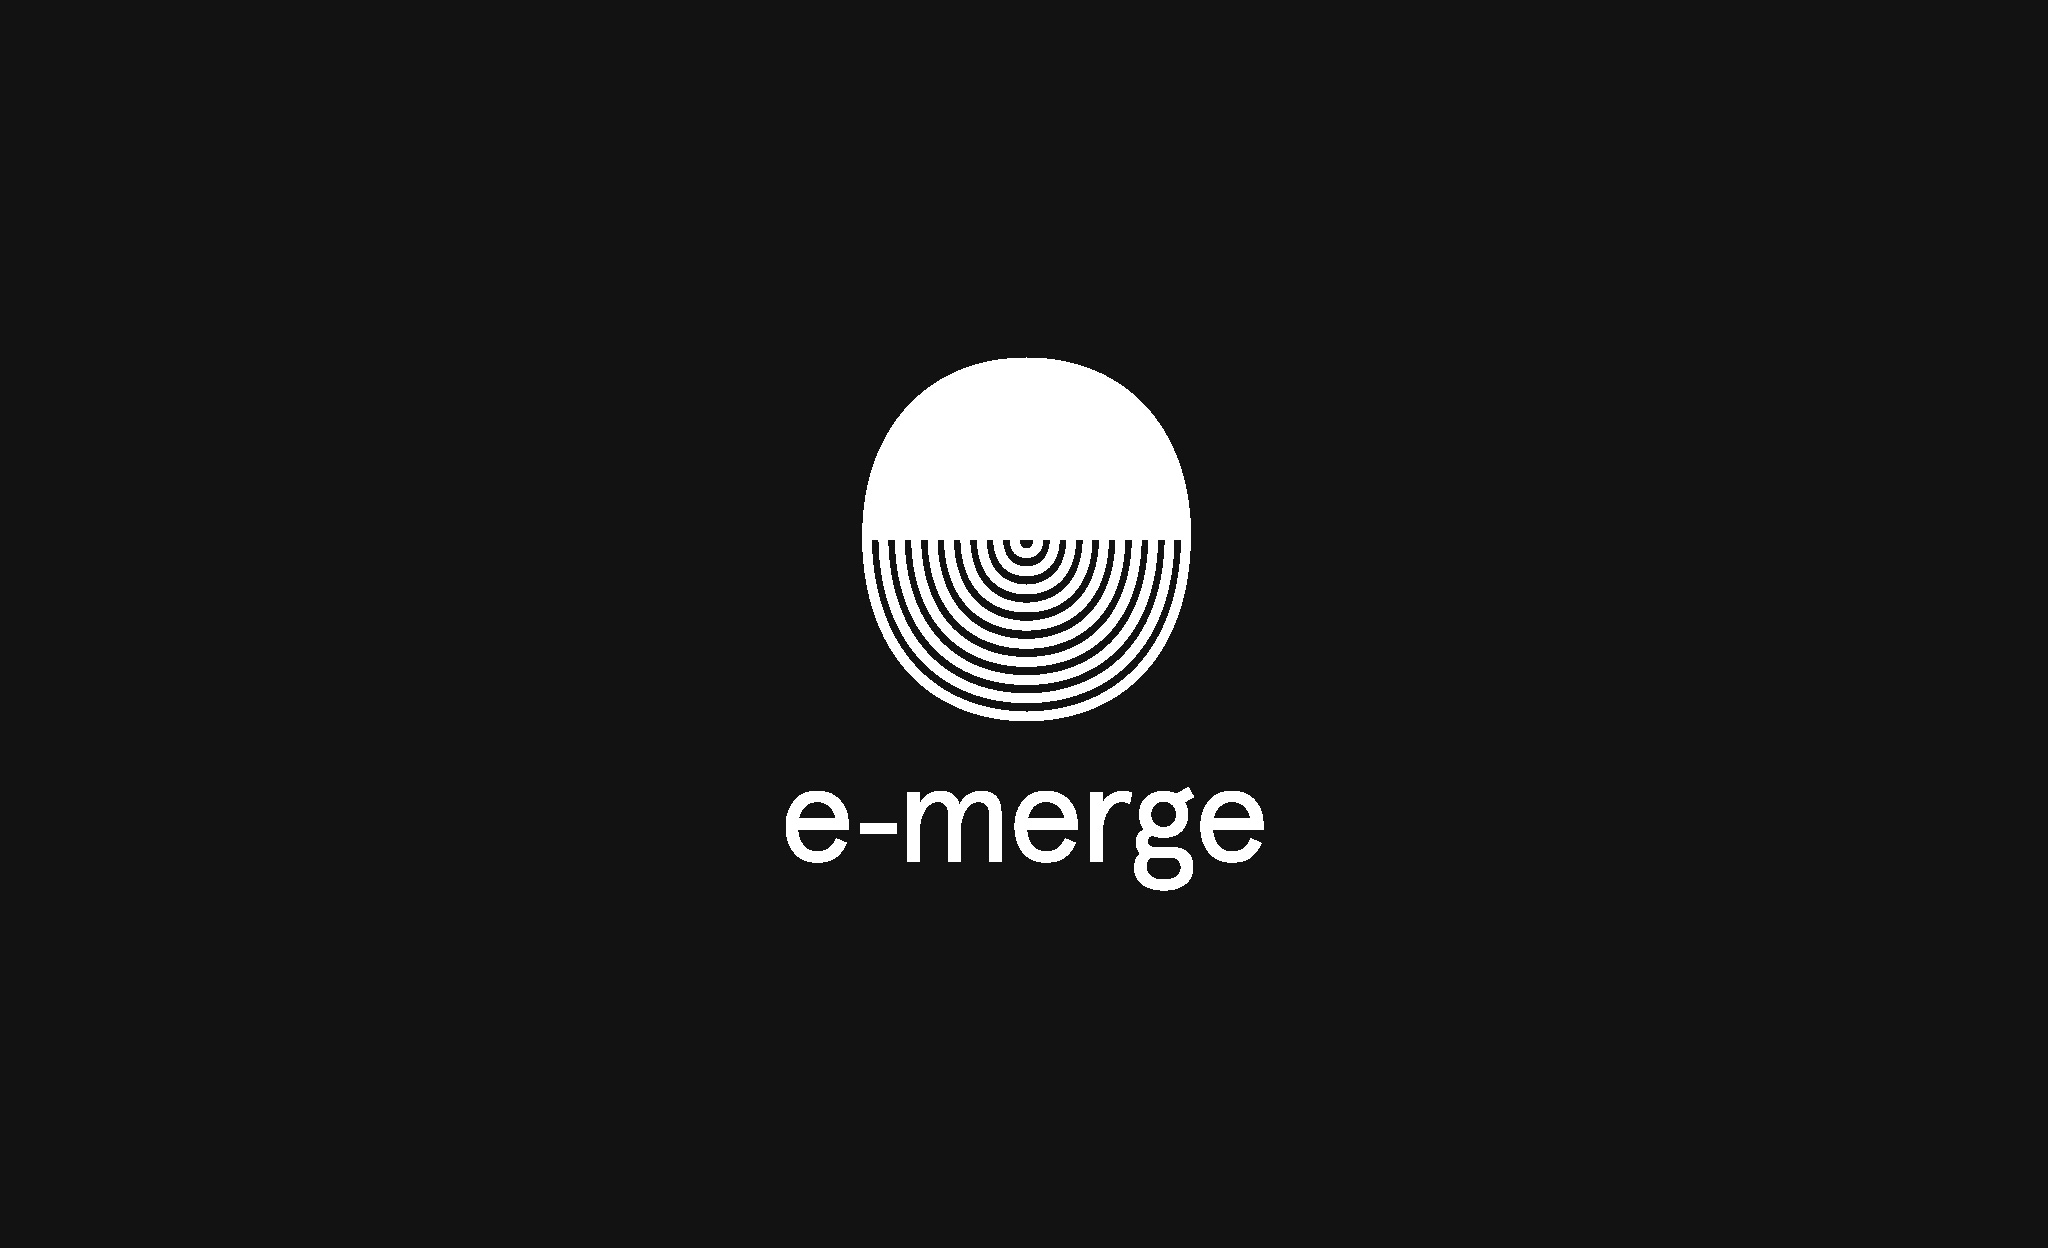 e-merge logotype